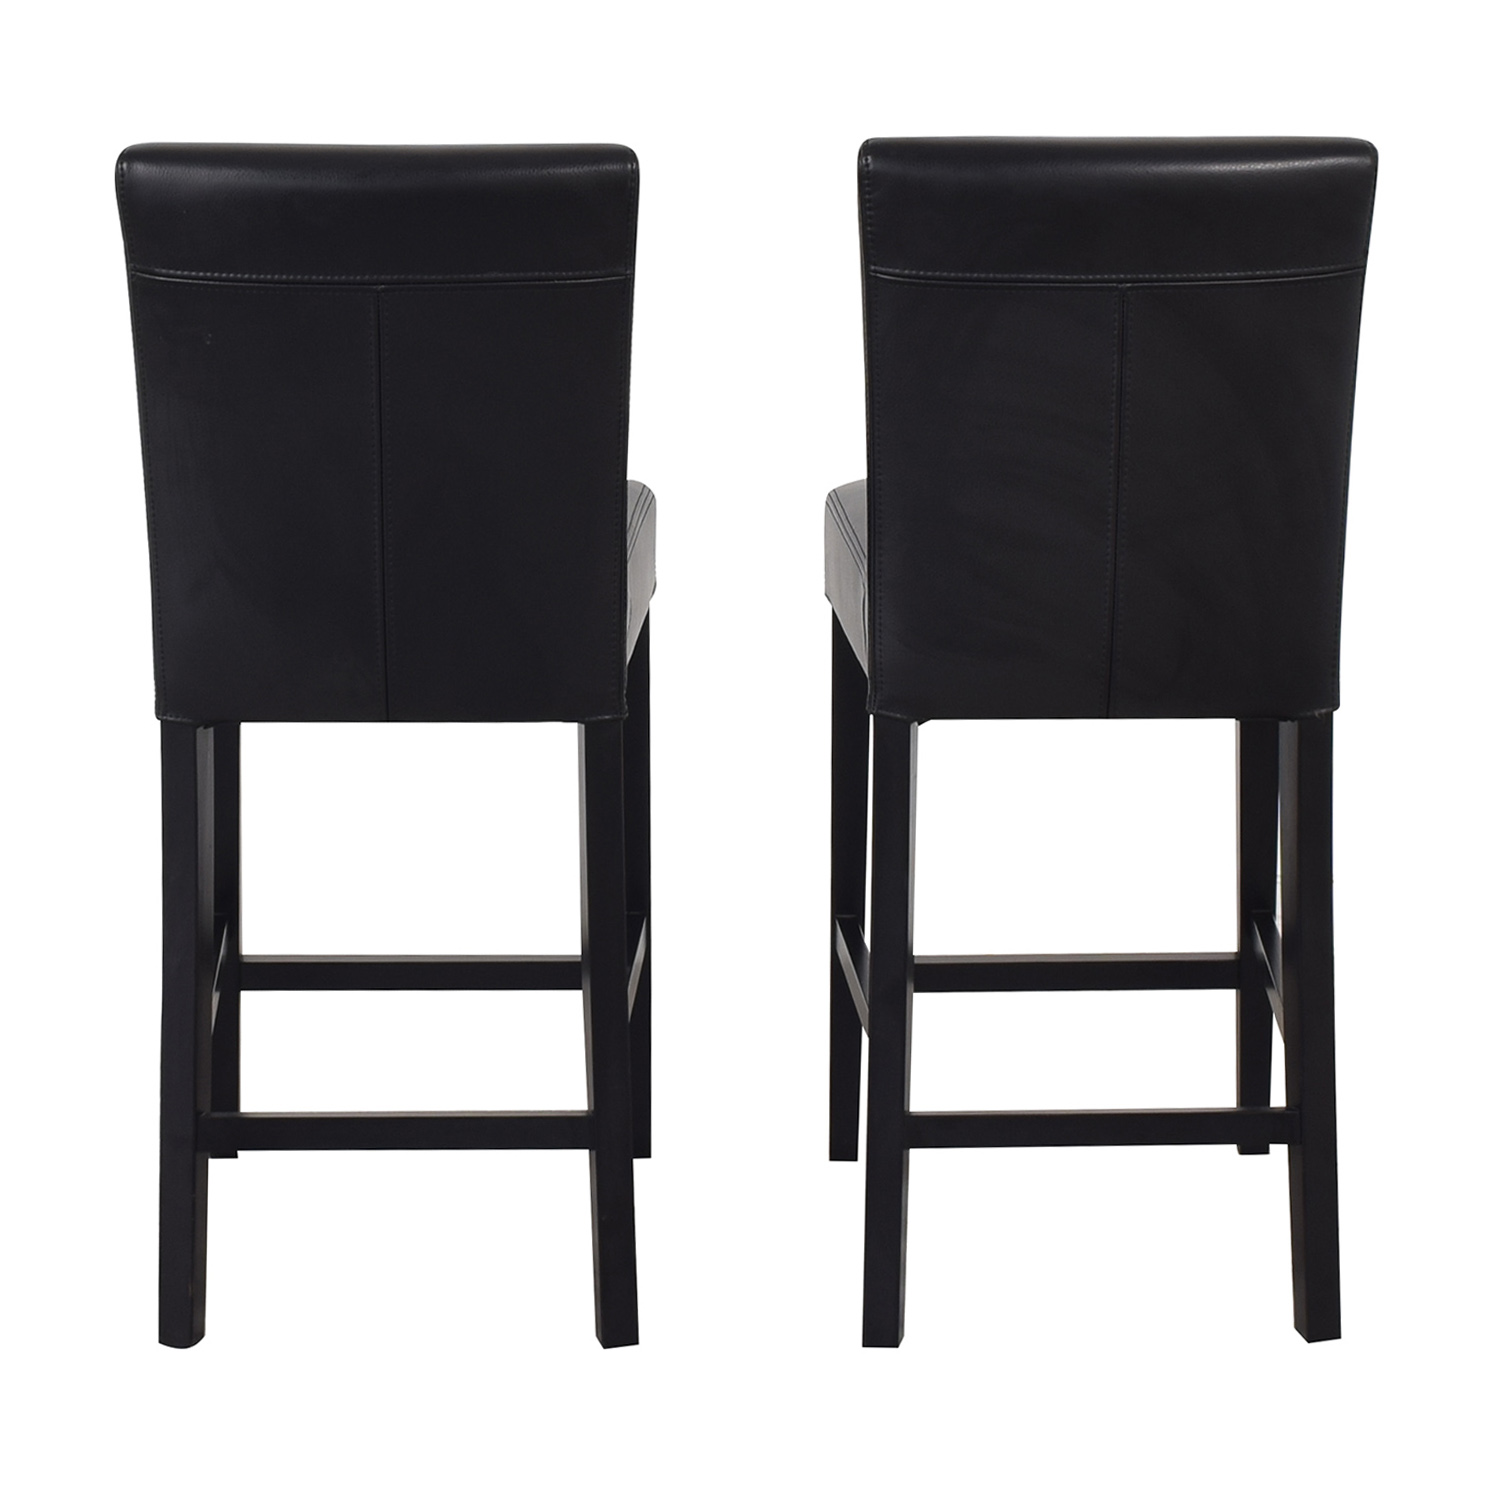 Crate & Barrel Crate & Barrel Lowe Counter Stools used